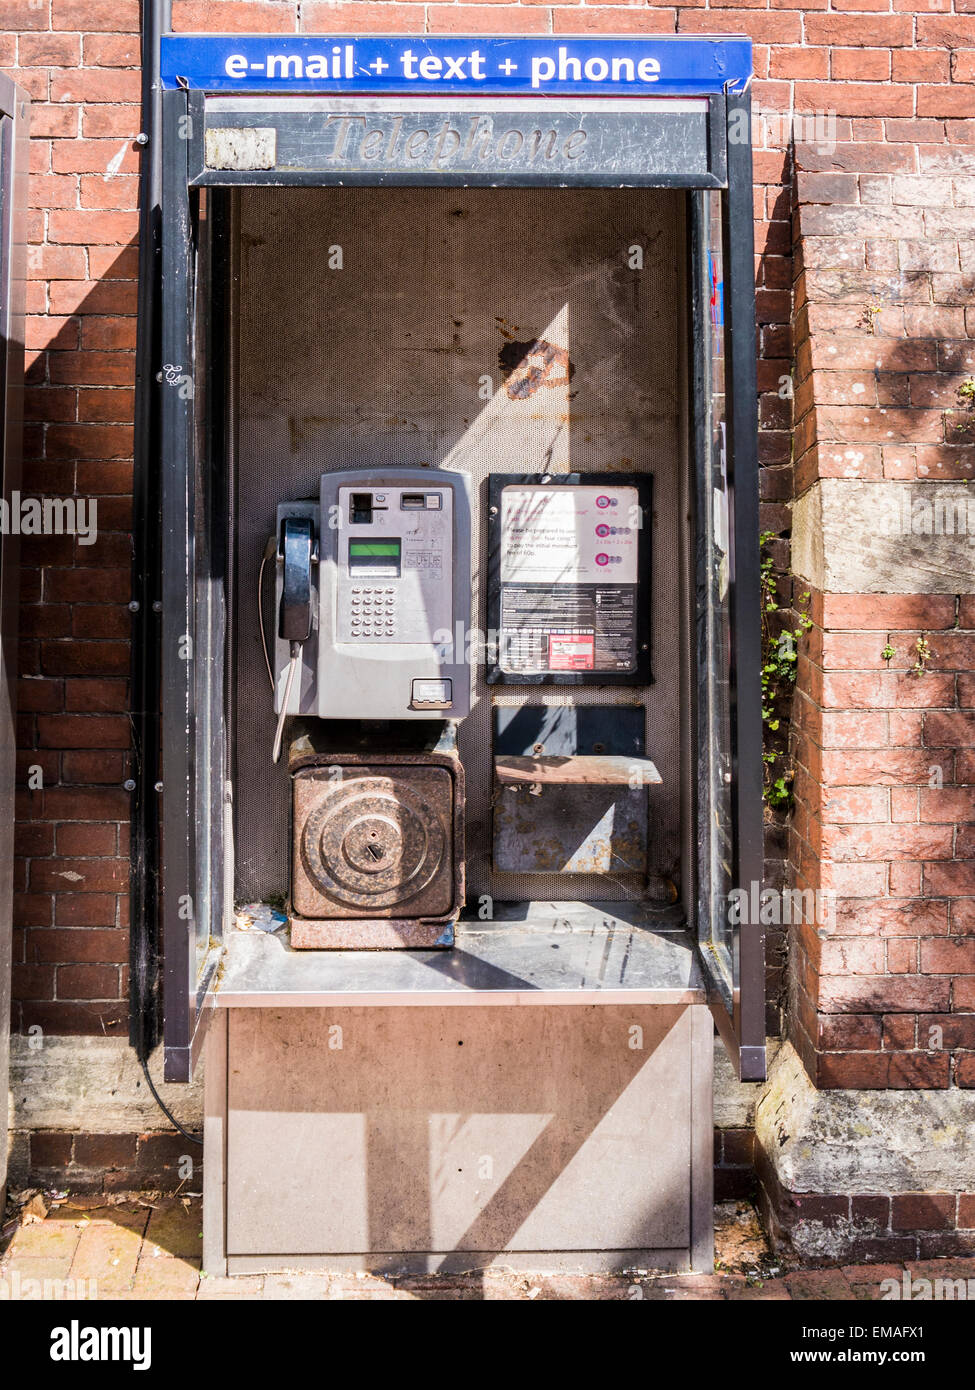 A public communication centre (telephone box). - Stock Image